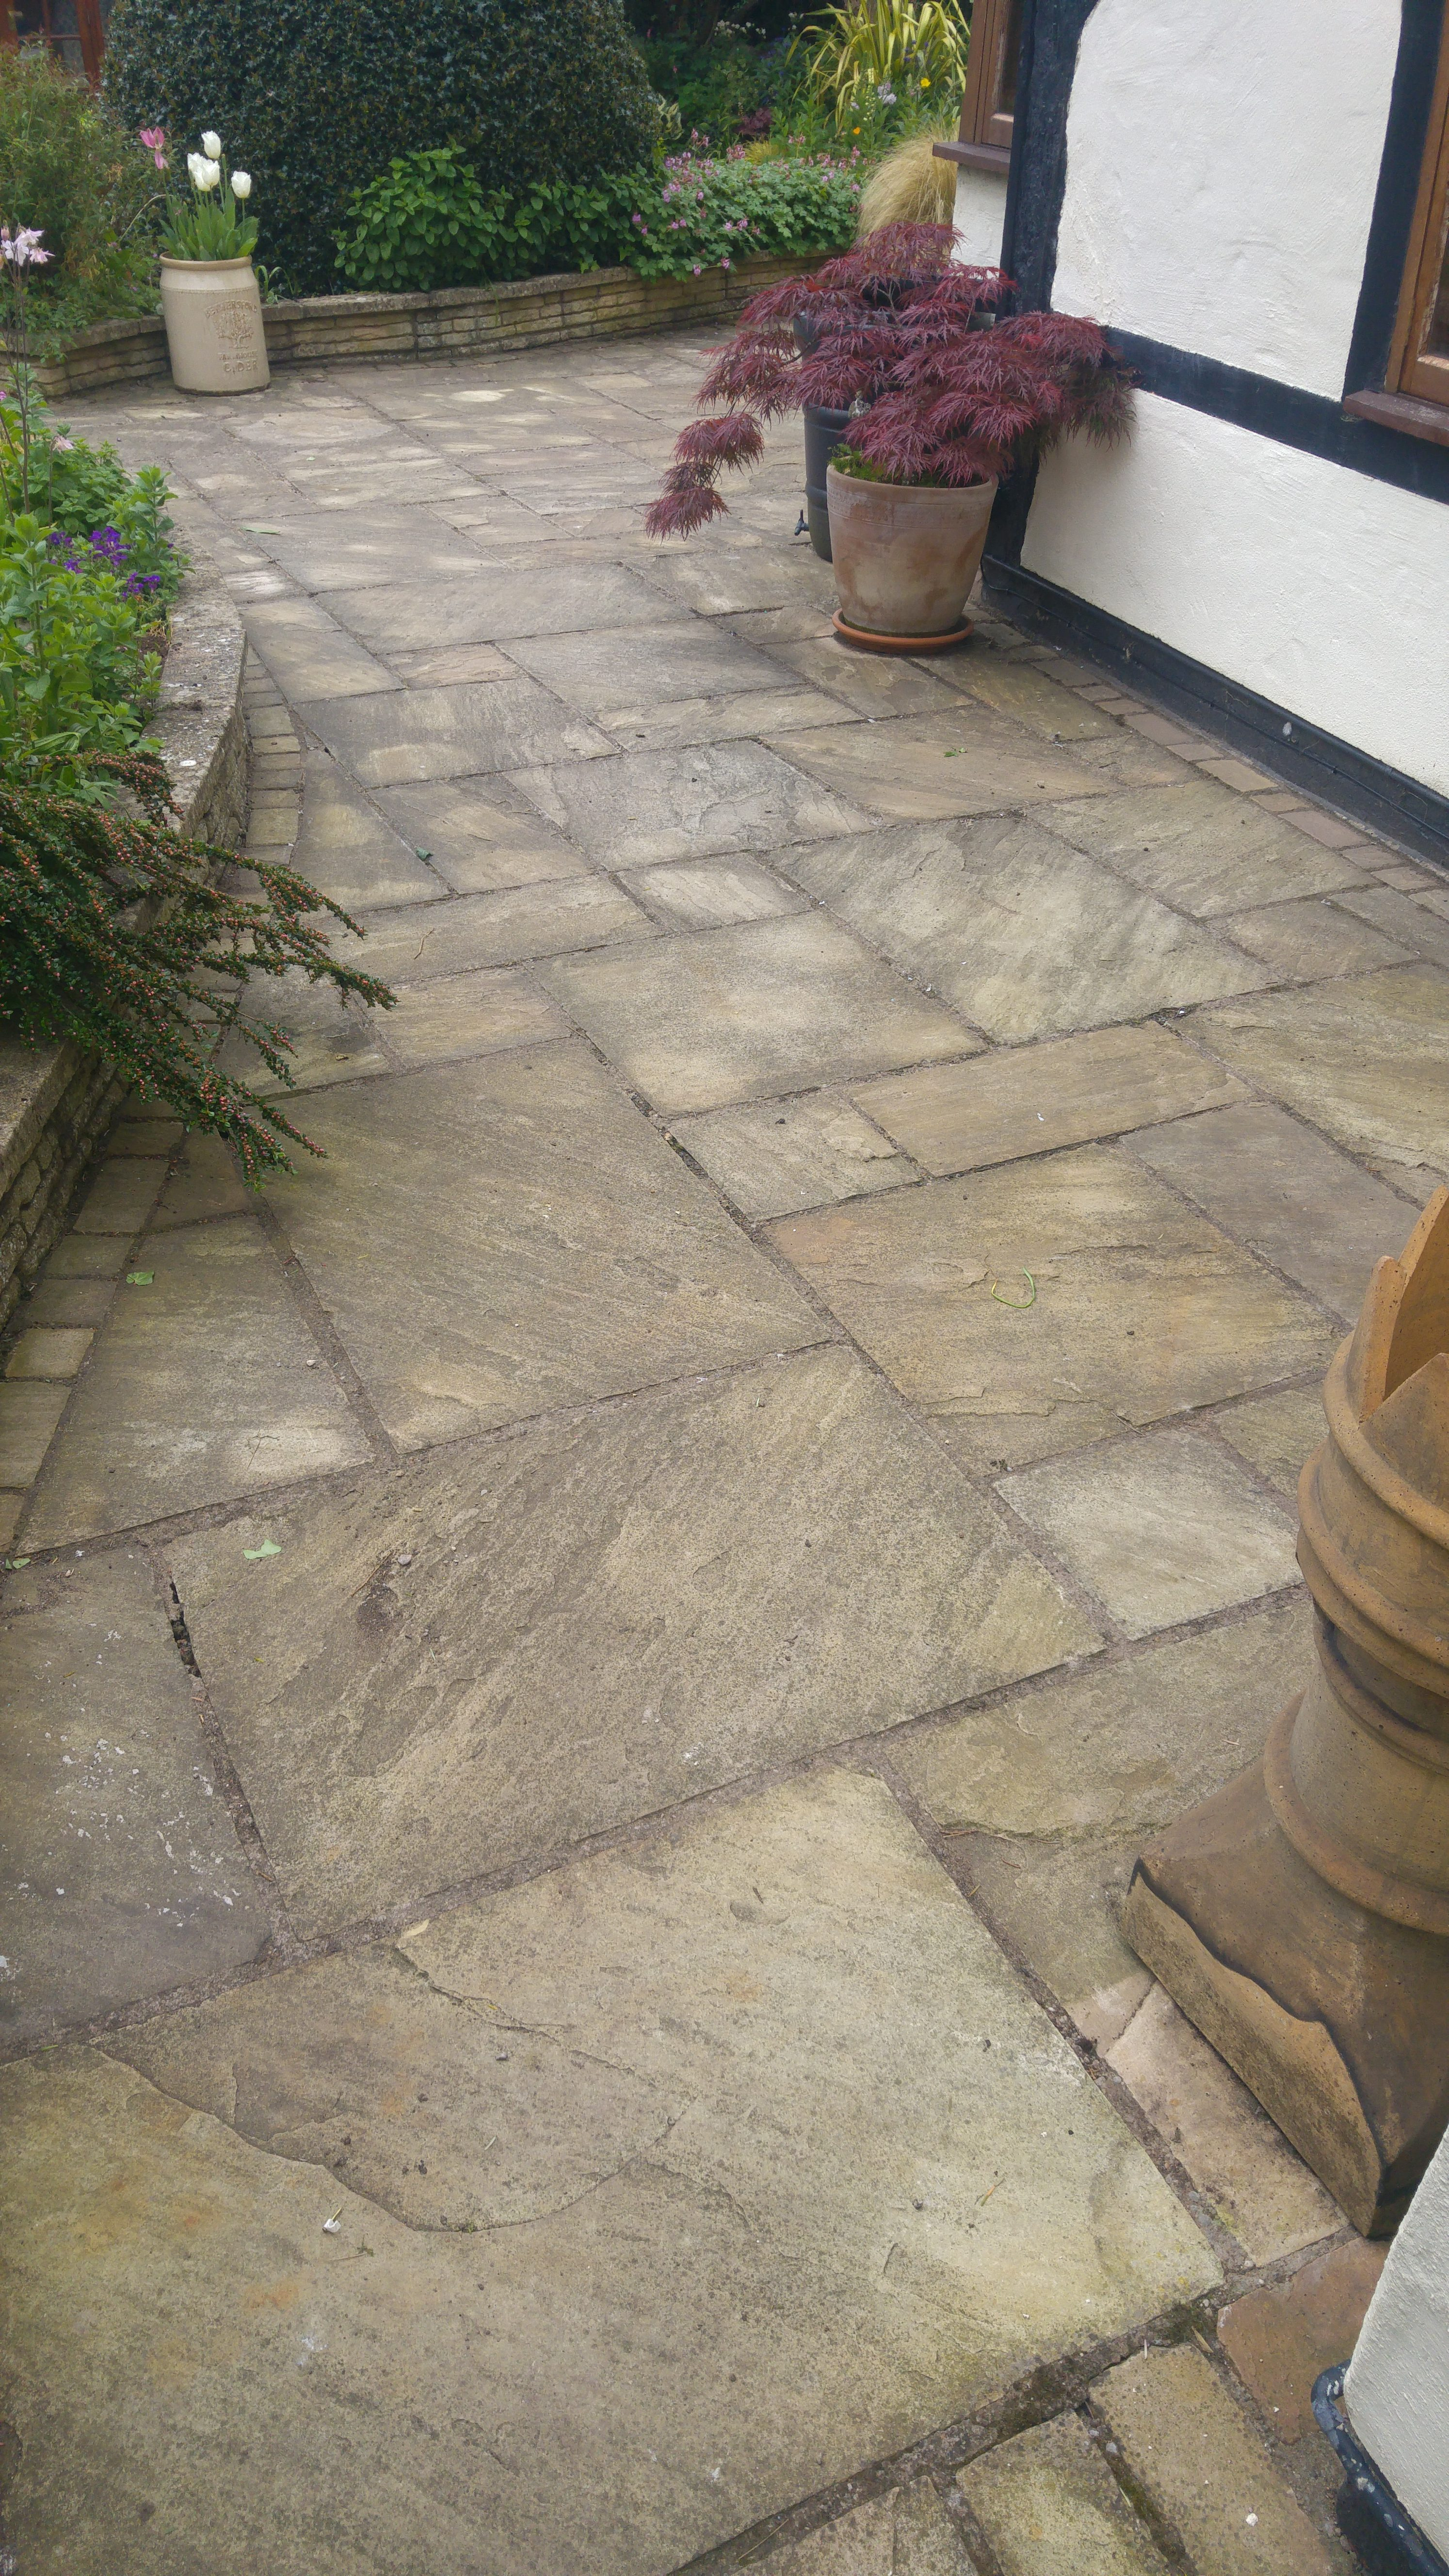 Driveway and Patio Cleaning Pershore